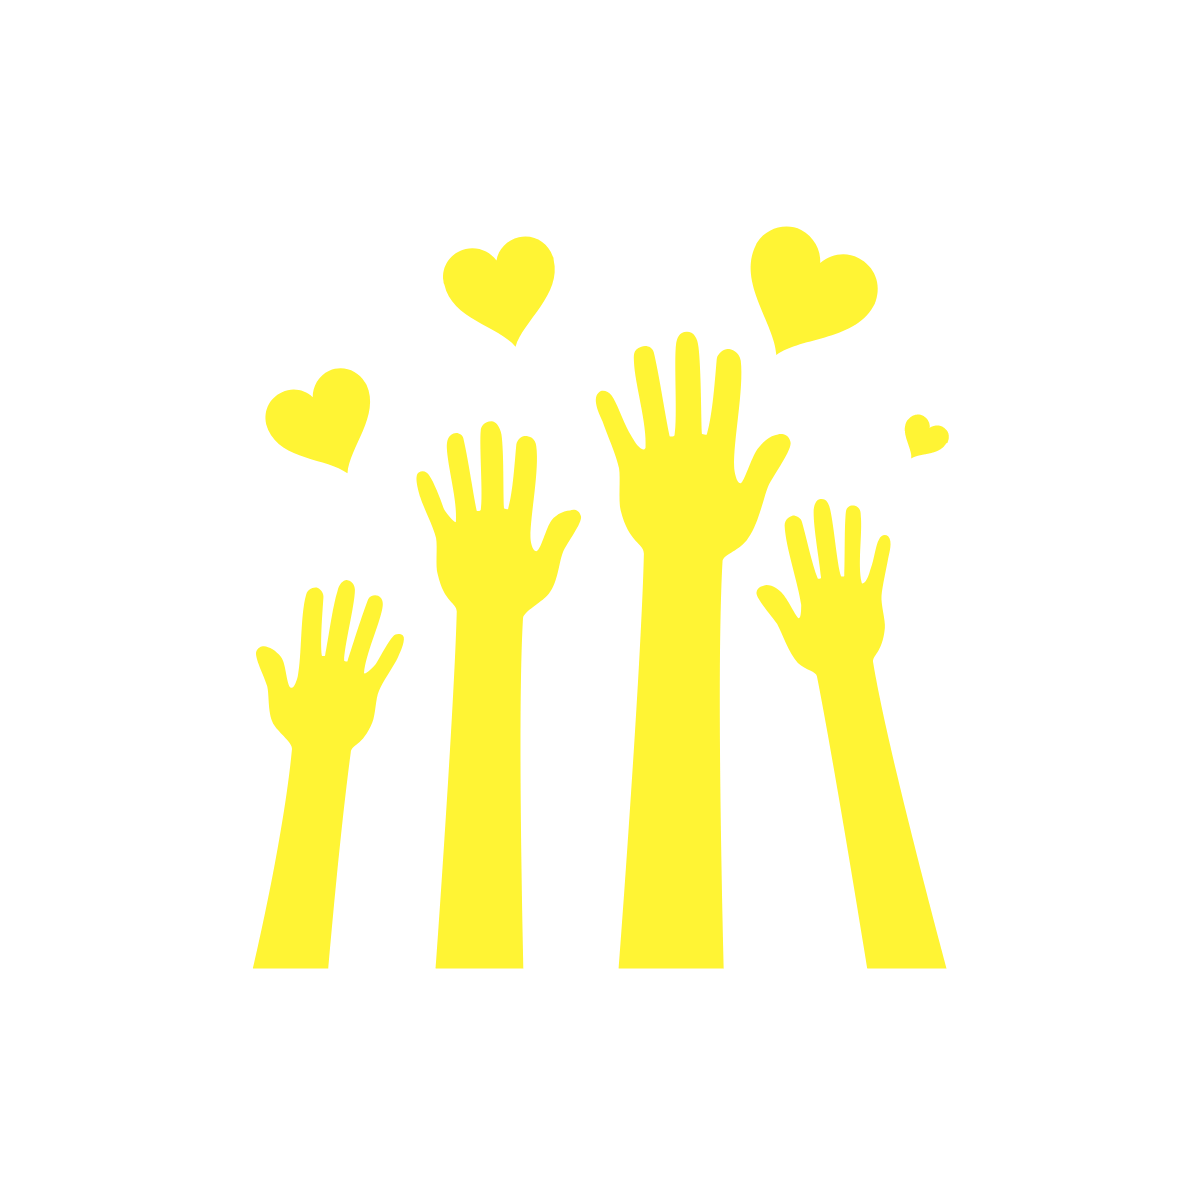 hands reaching toward the sky with hearts.